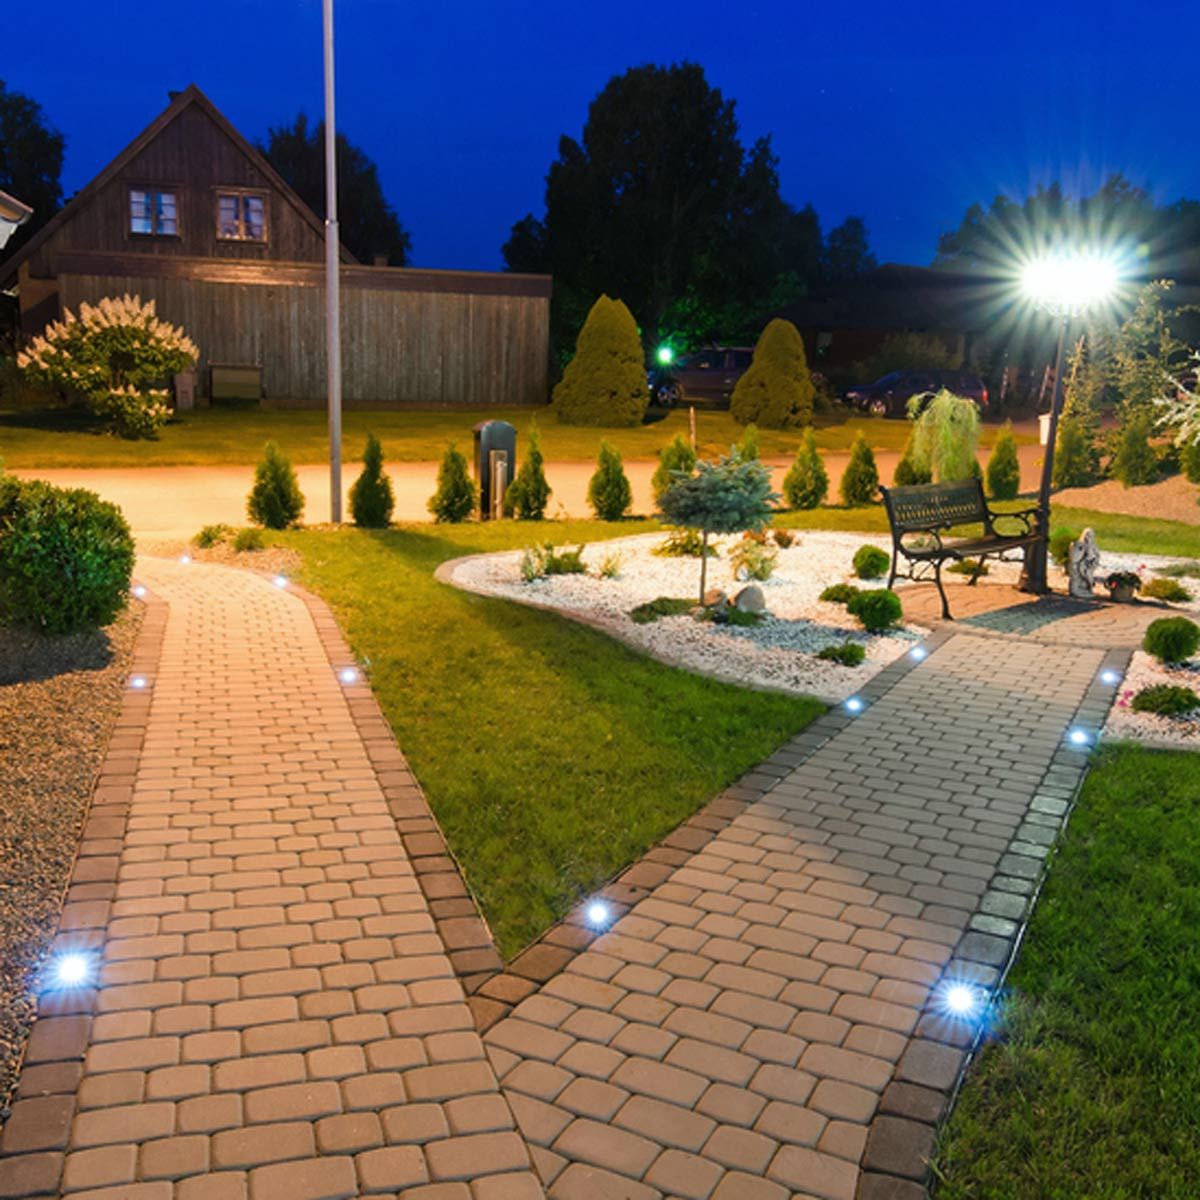 5 Pathway Lighting Tips Ideas Walkway Lights Guide: 14 Outdoor Lighting Trends For 2018